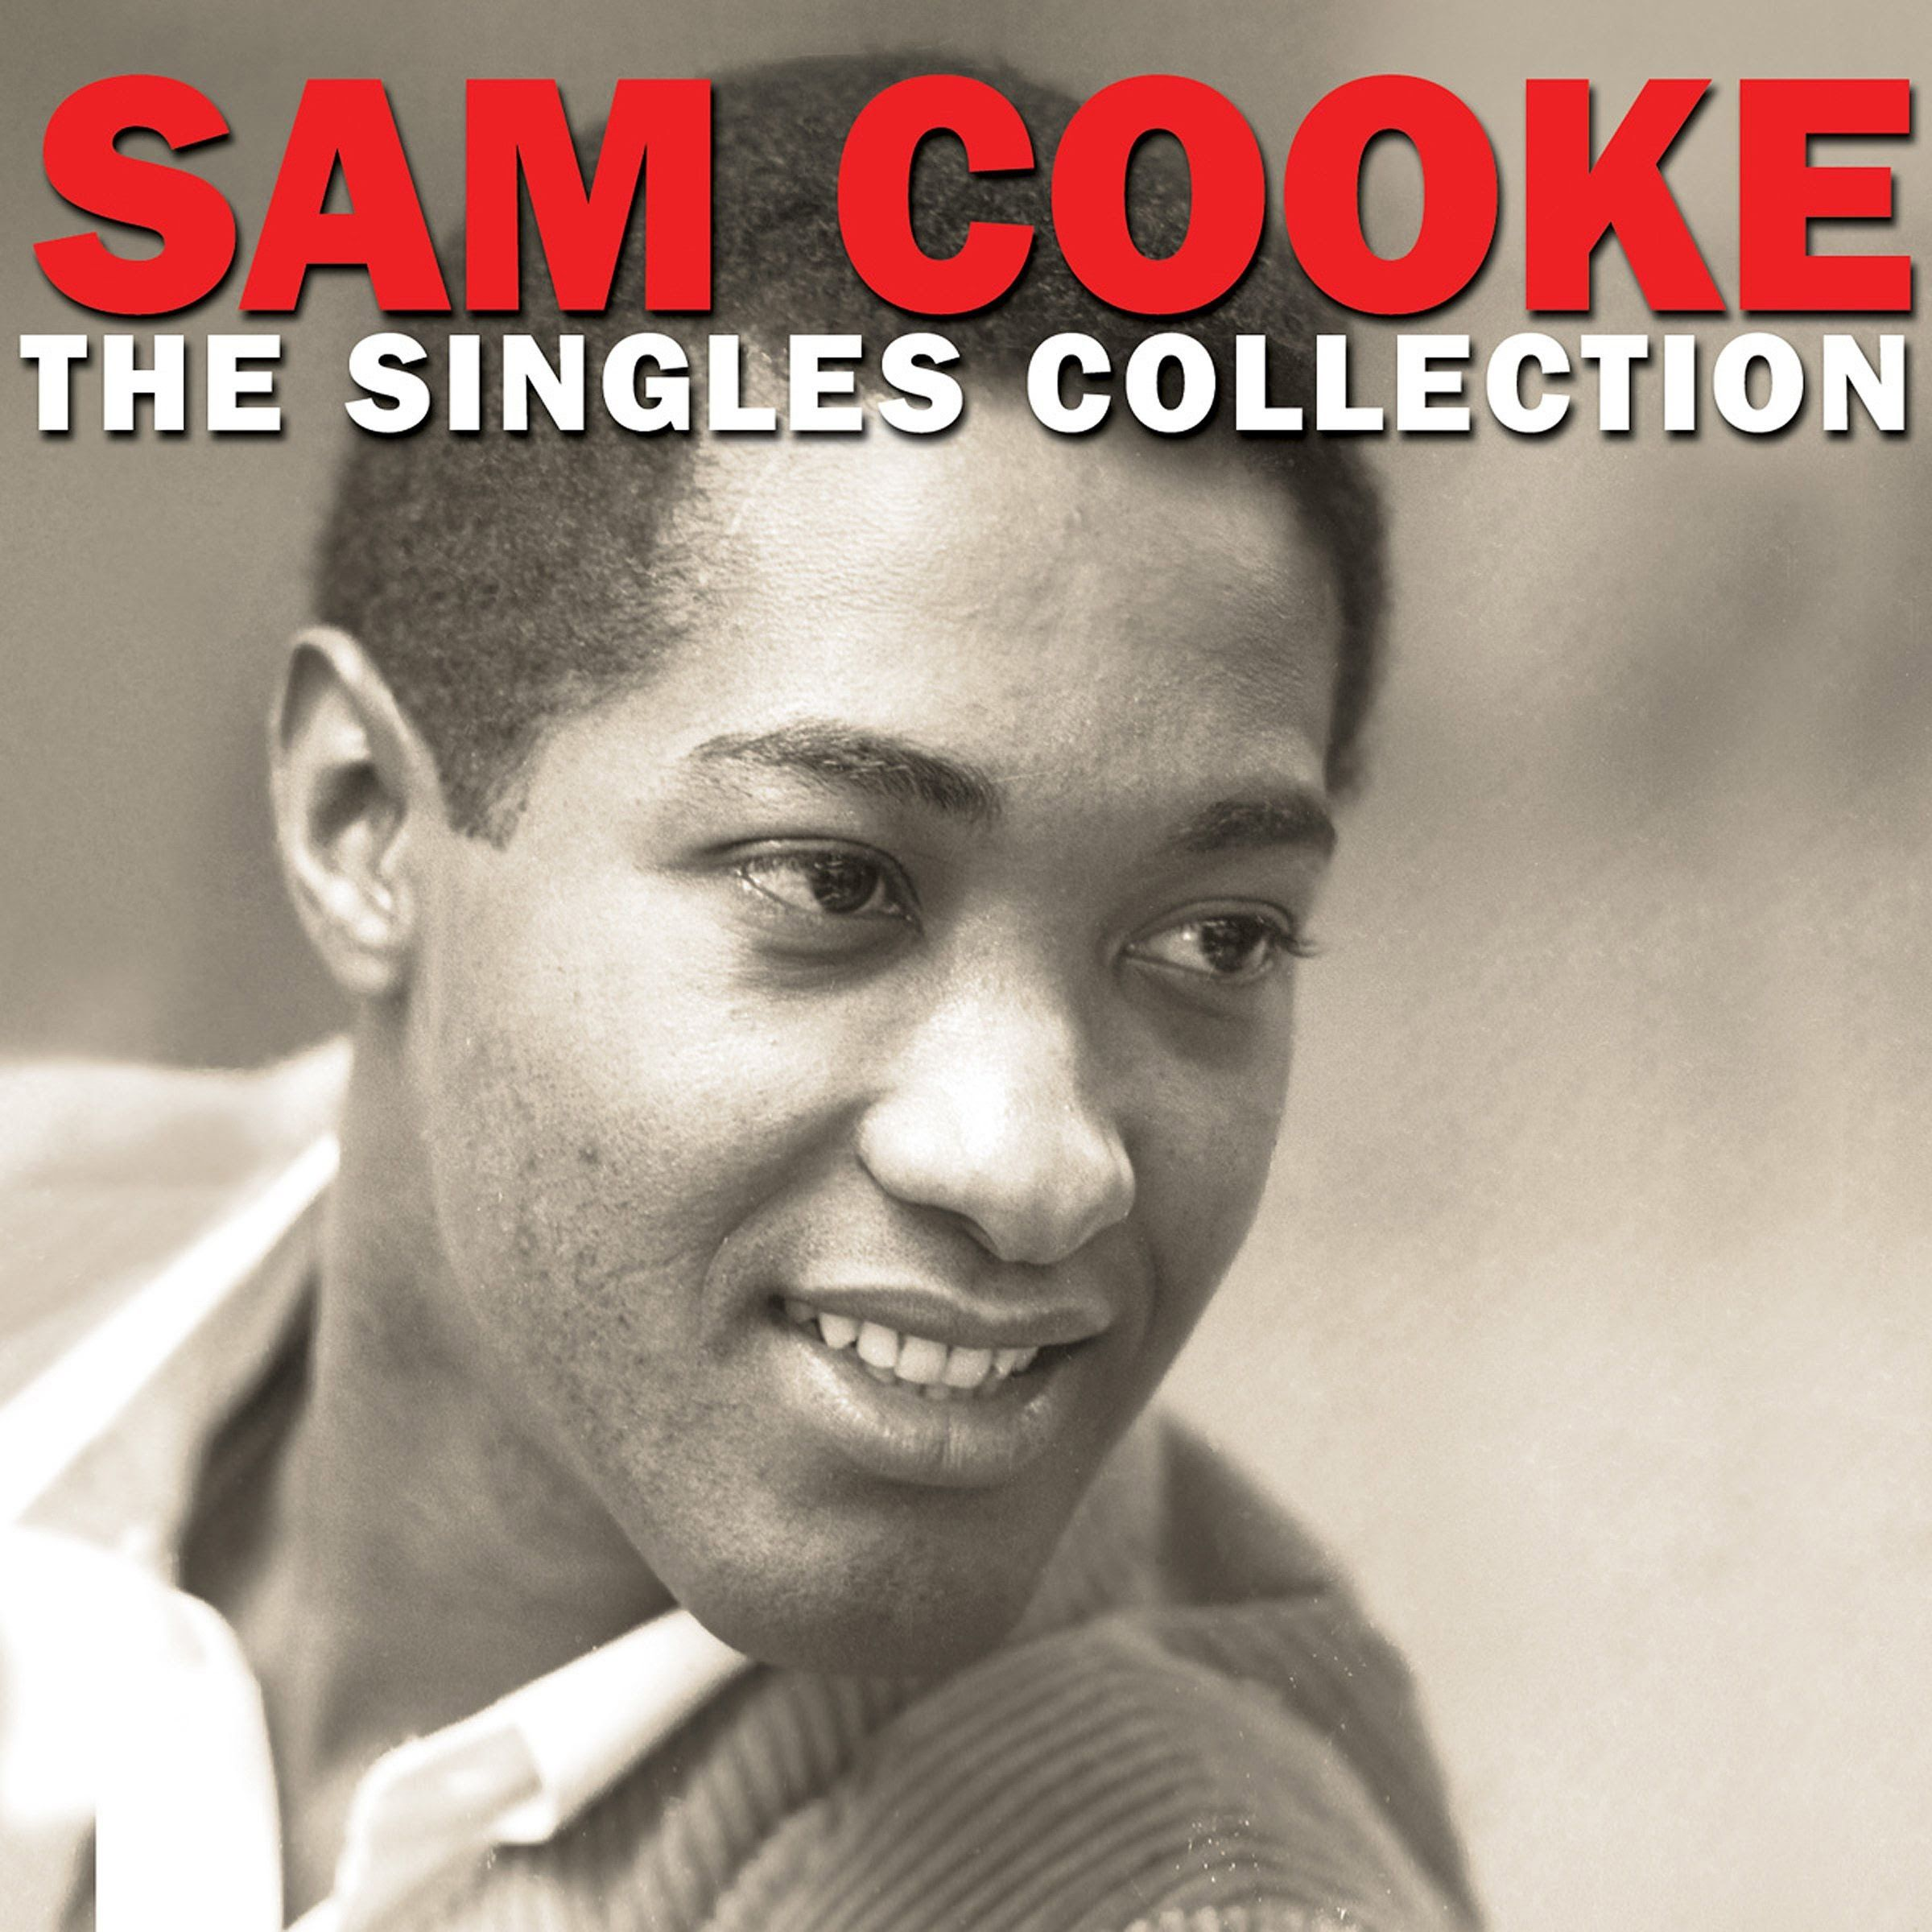 Sam Cooke The Singles Collection Not Now Music Full